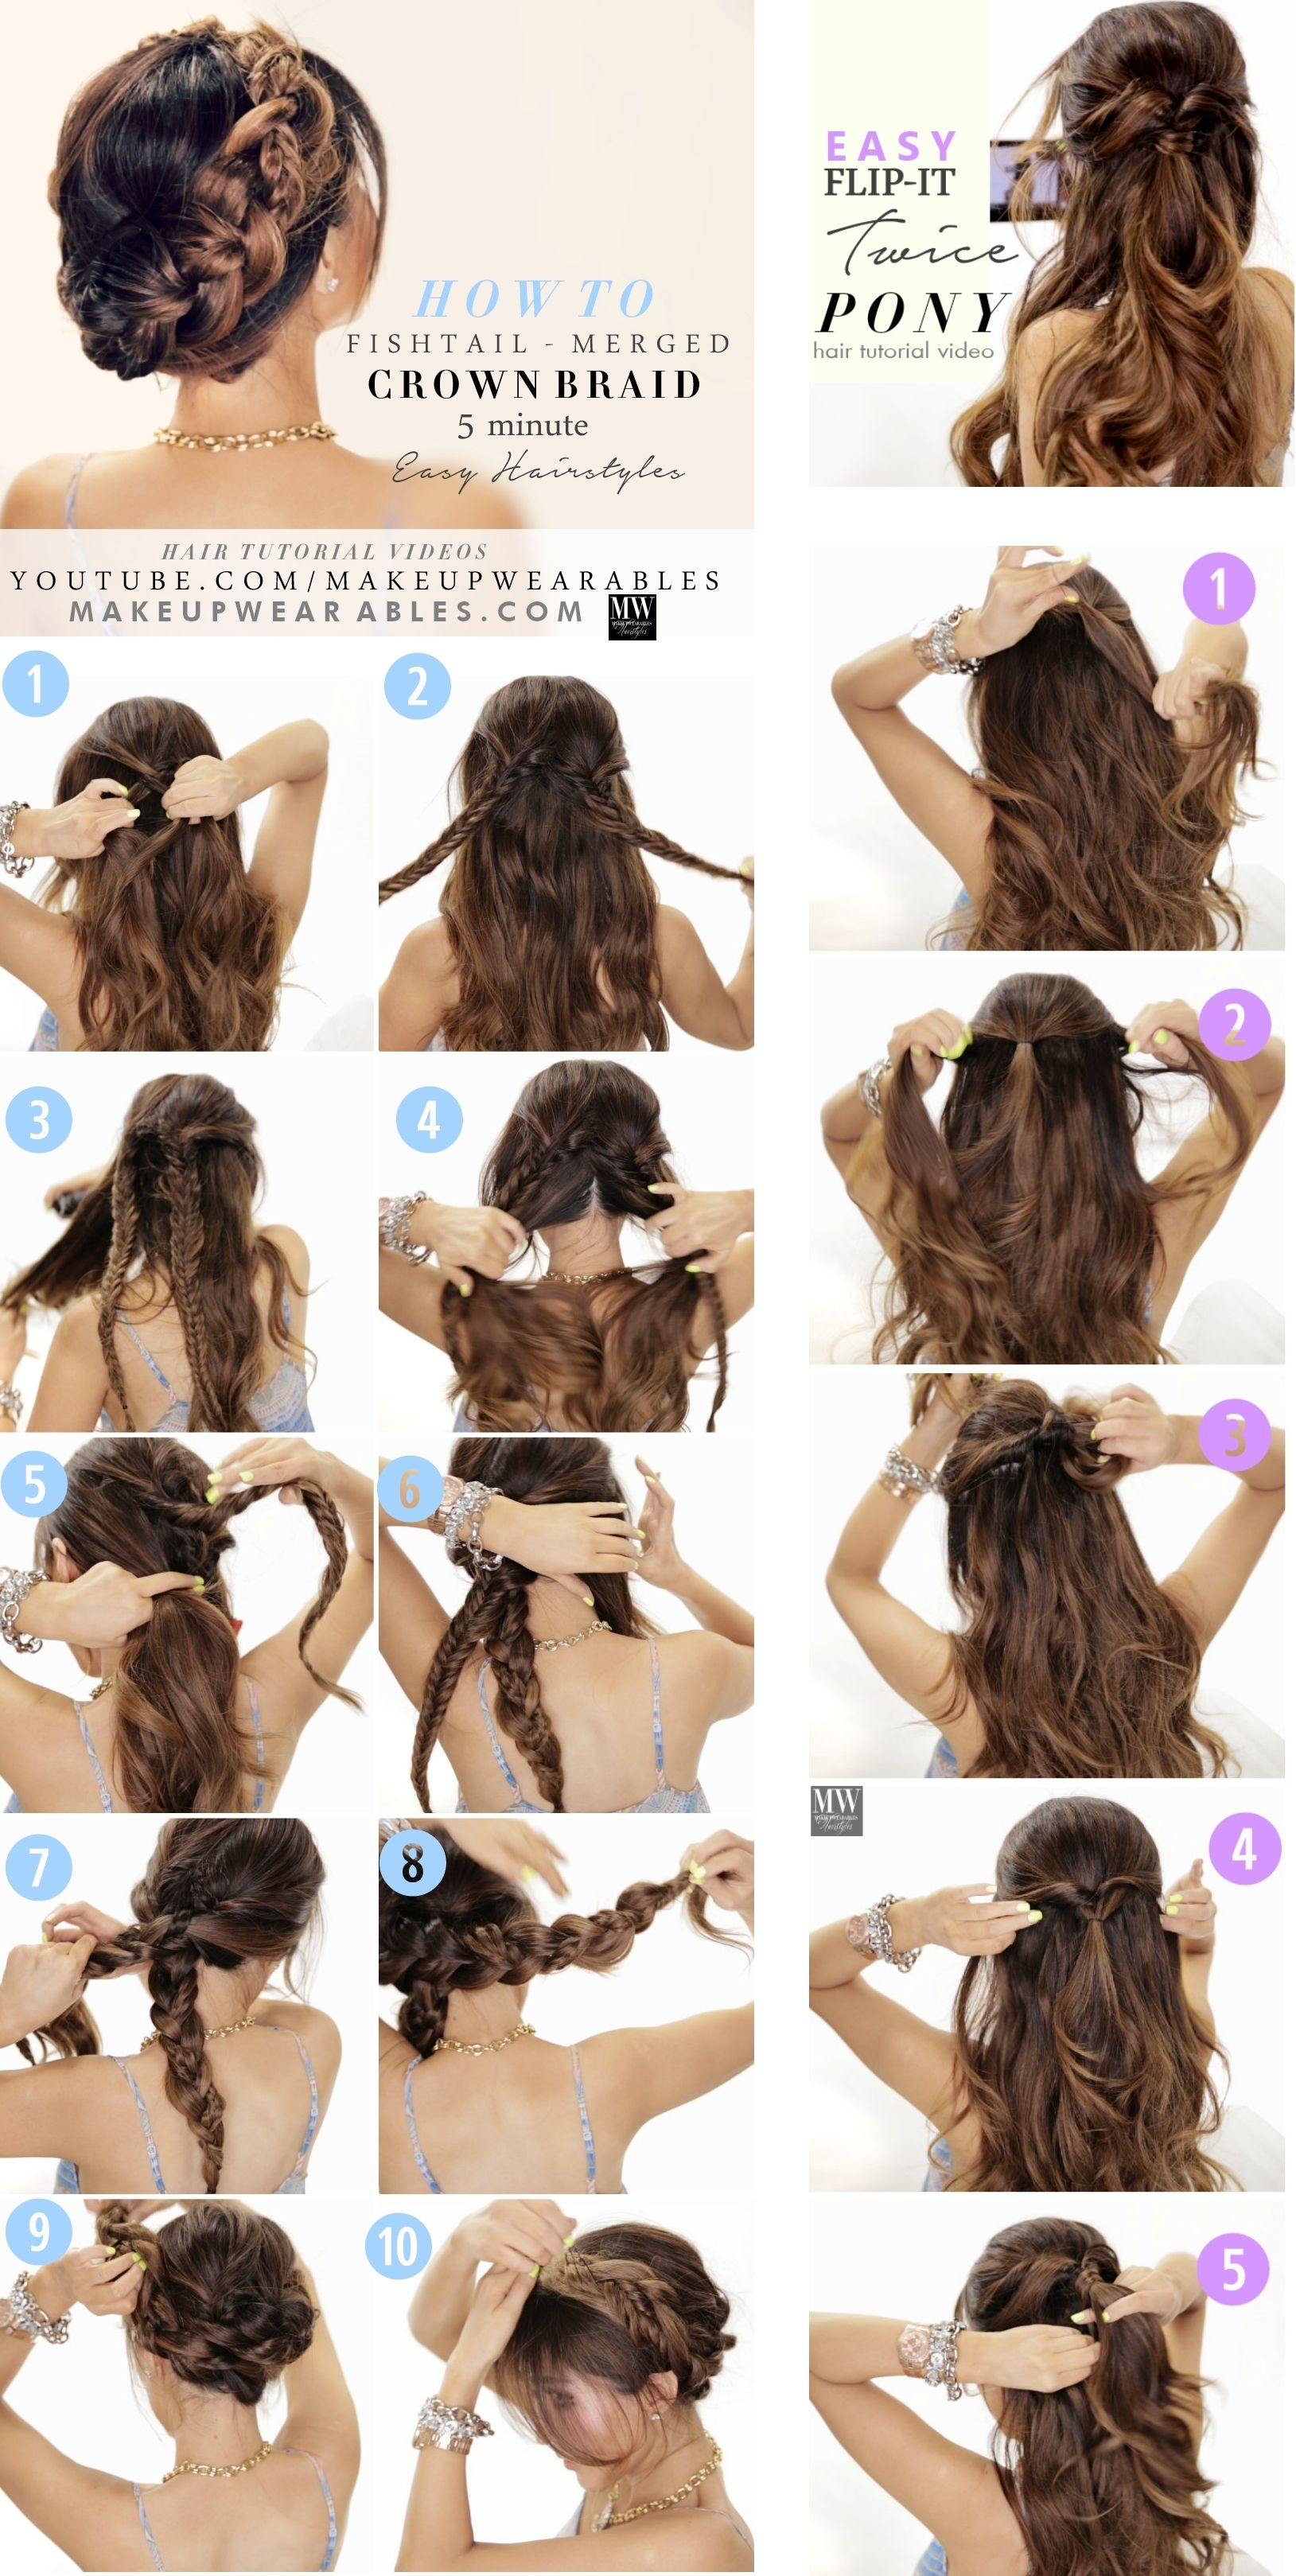 3 easy #hairstyles with merged #braids | #hair tutorial | hairstyles